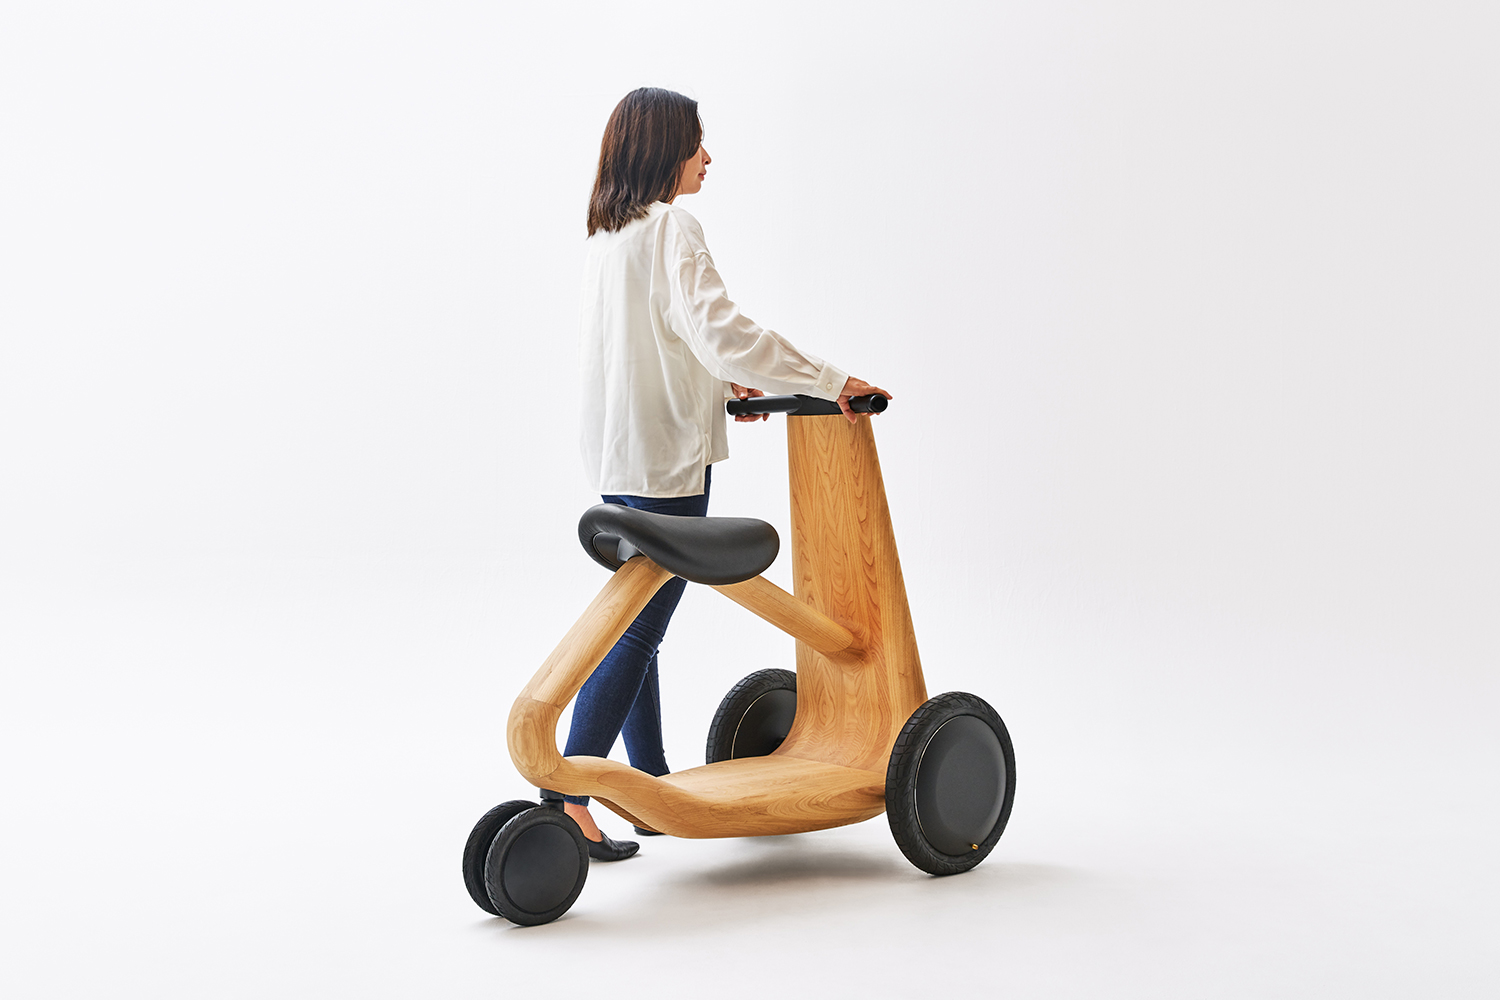 ILY-Ai wooden electric scooter mid-century modern scooter padstyle.com